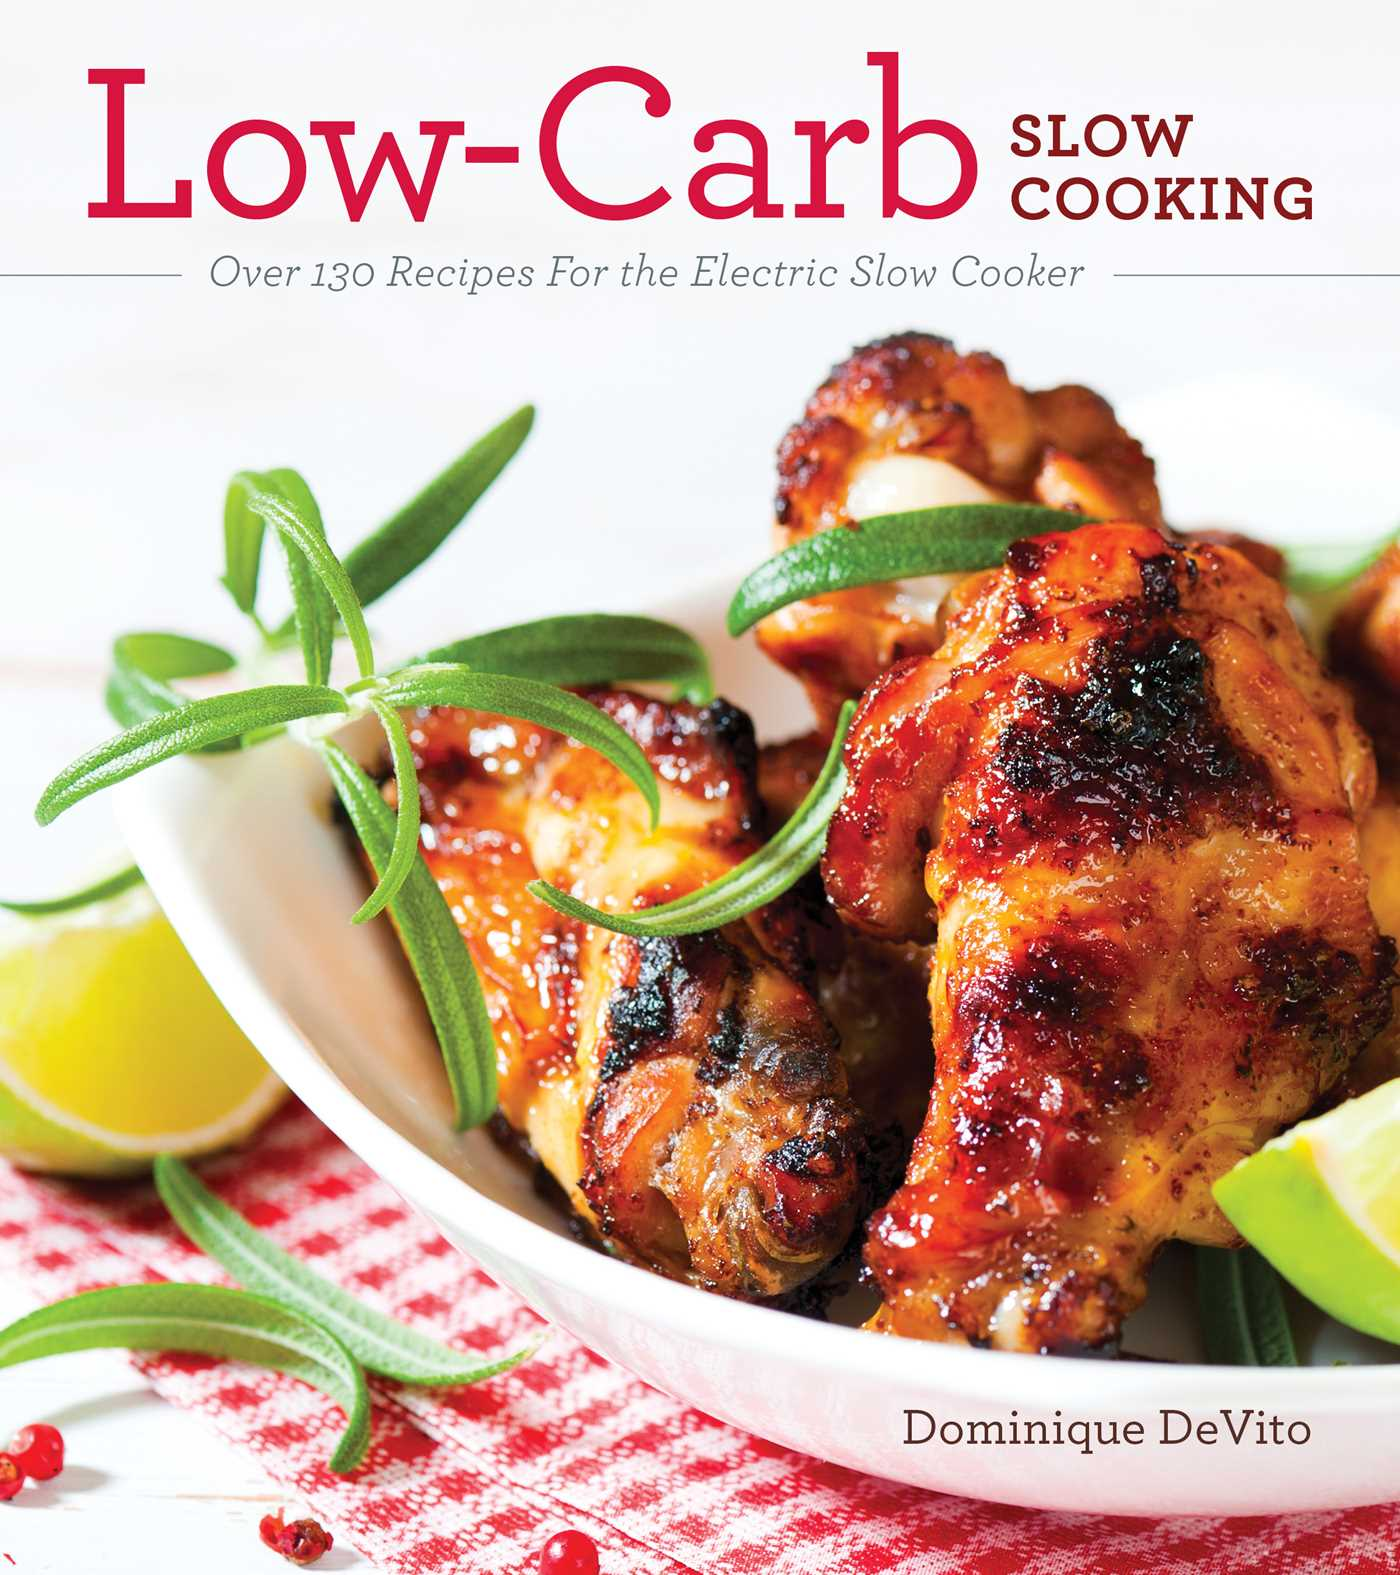 low carb slow cooking book by dominique devito amy. Black Bedroom Furniture Sets. Home Design Ideas